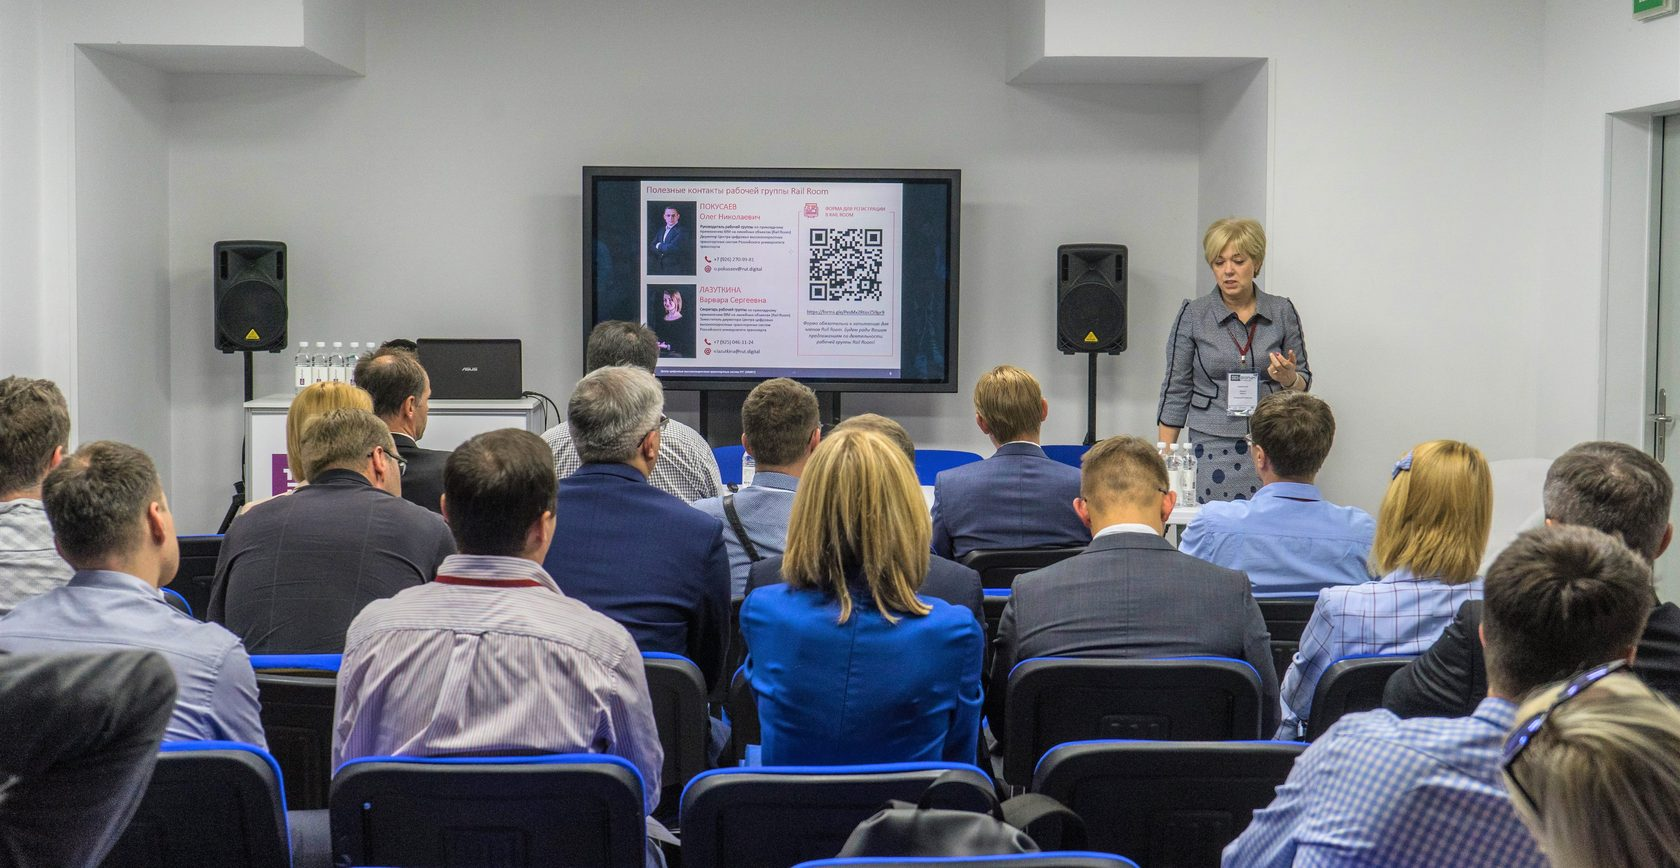 BIM Forum Russia - 1st event and exhibition about BIM and